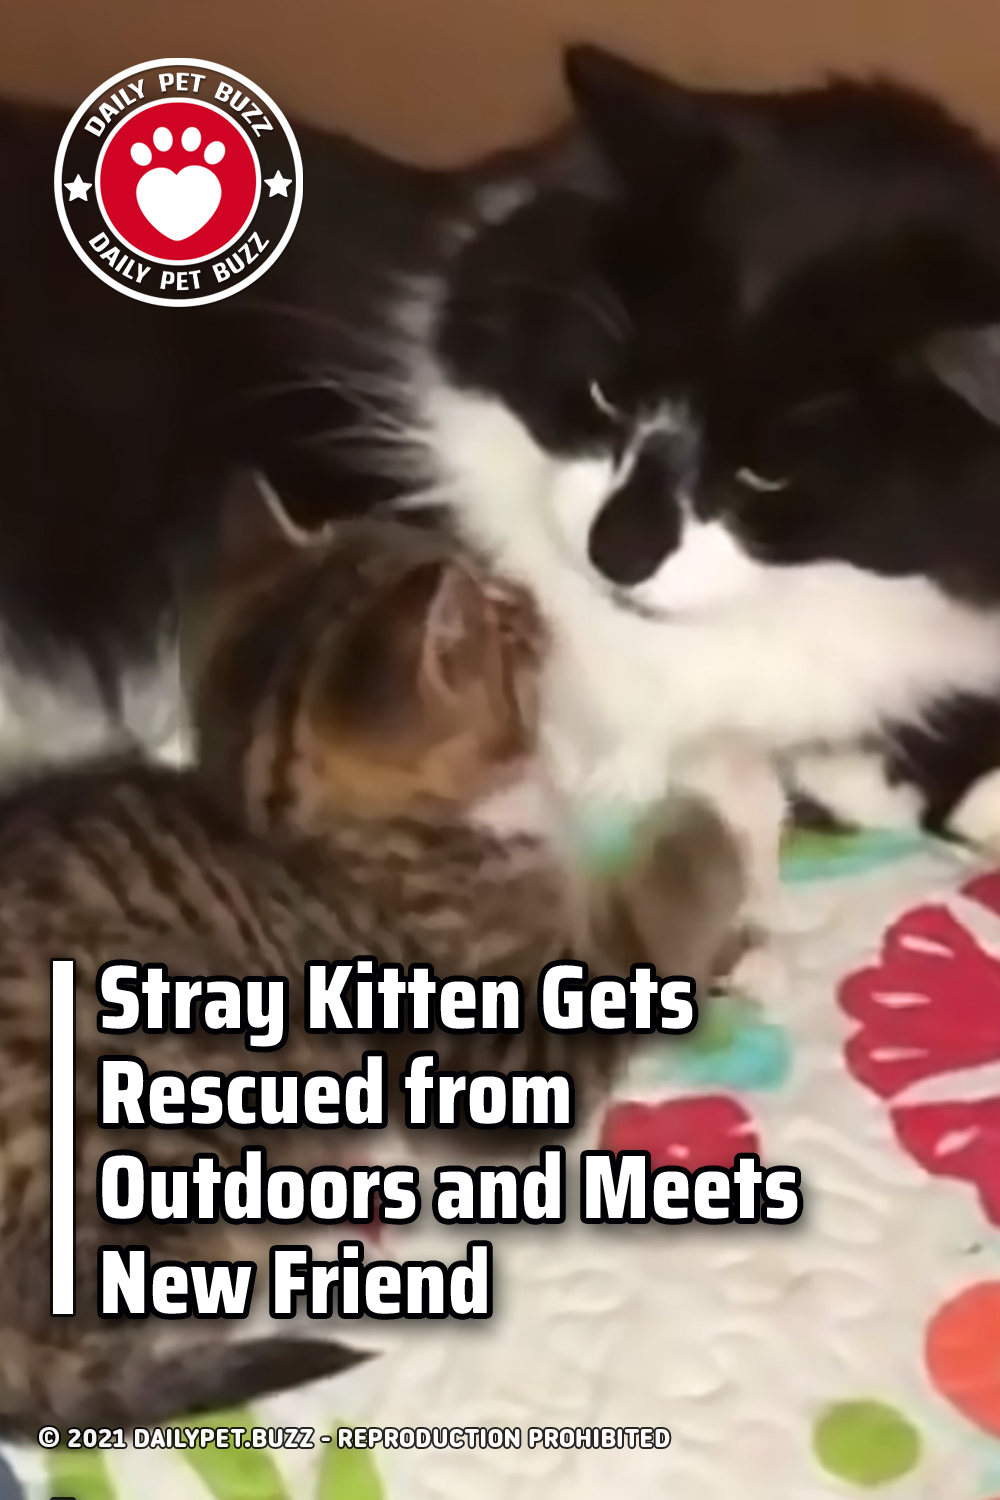 Stray Kitten Gets Rescued from Outdoors and Meets New Friend